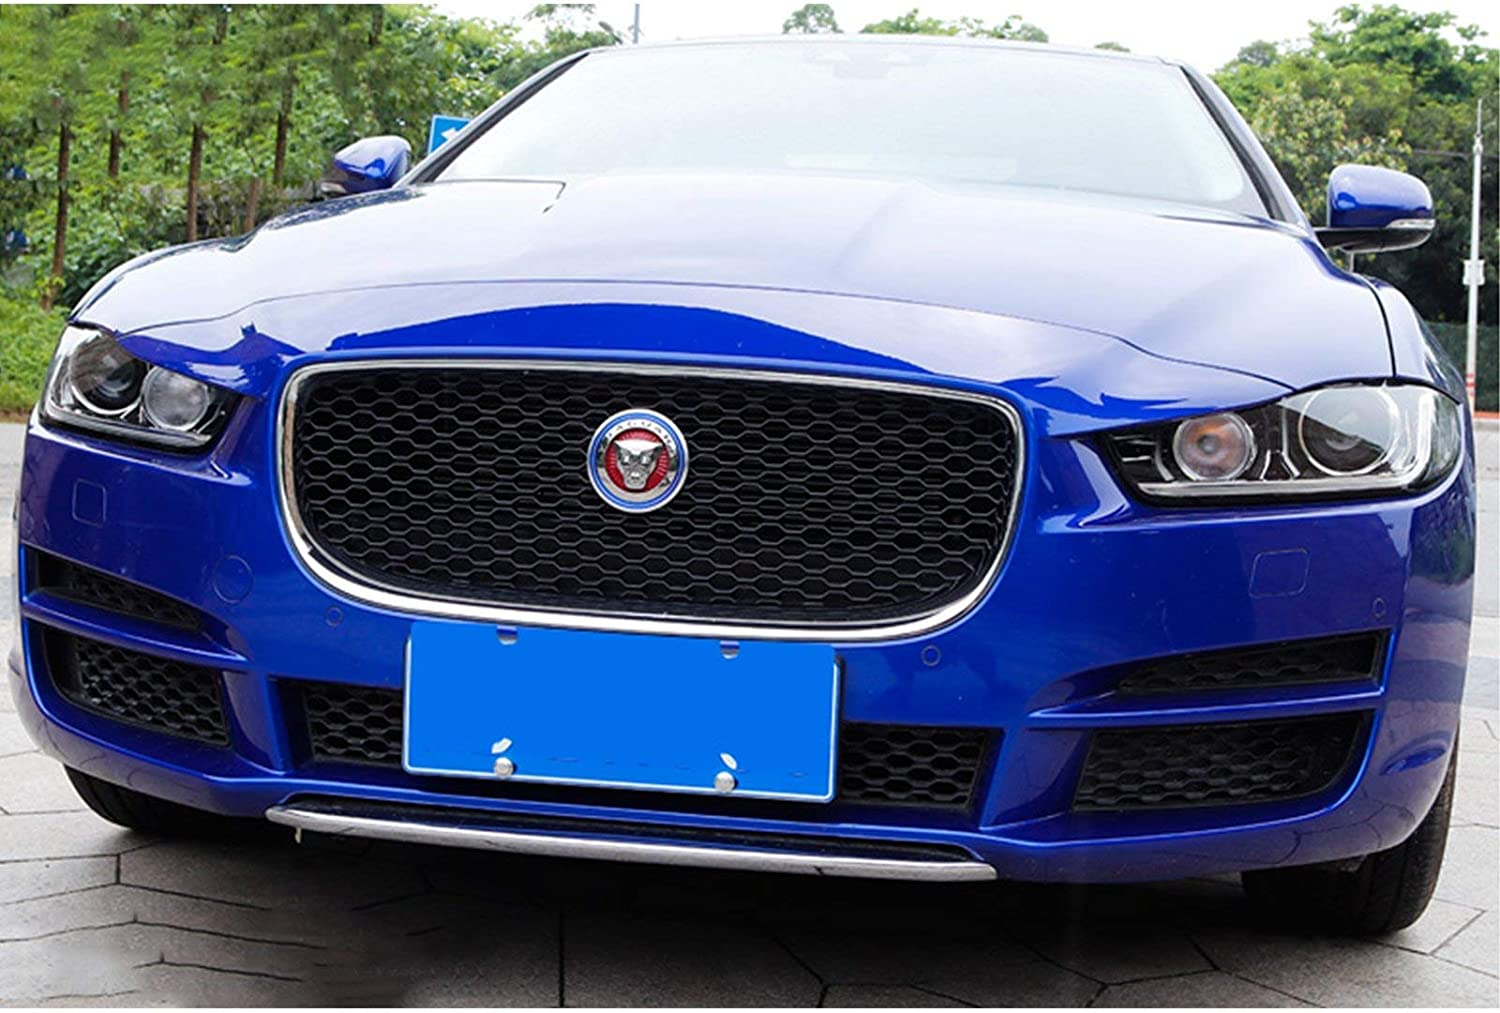 Xotic Tech Blue Aluminum Surrounding Decoration Ring for Jaguar F-Pace XE XF XJ Front Grille Feline Emblem